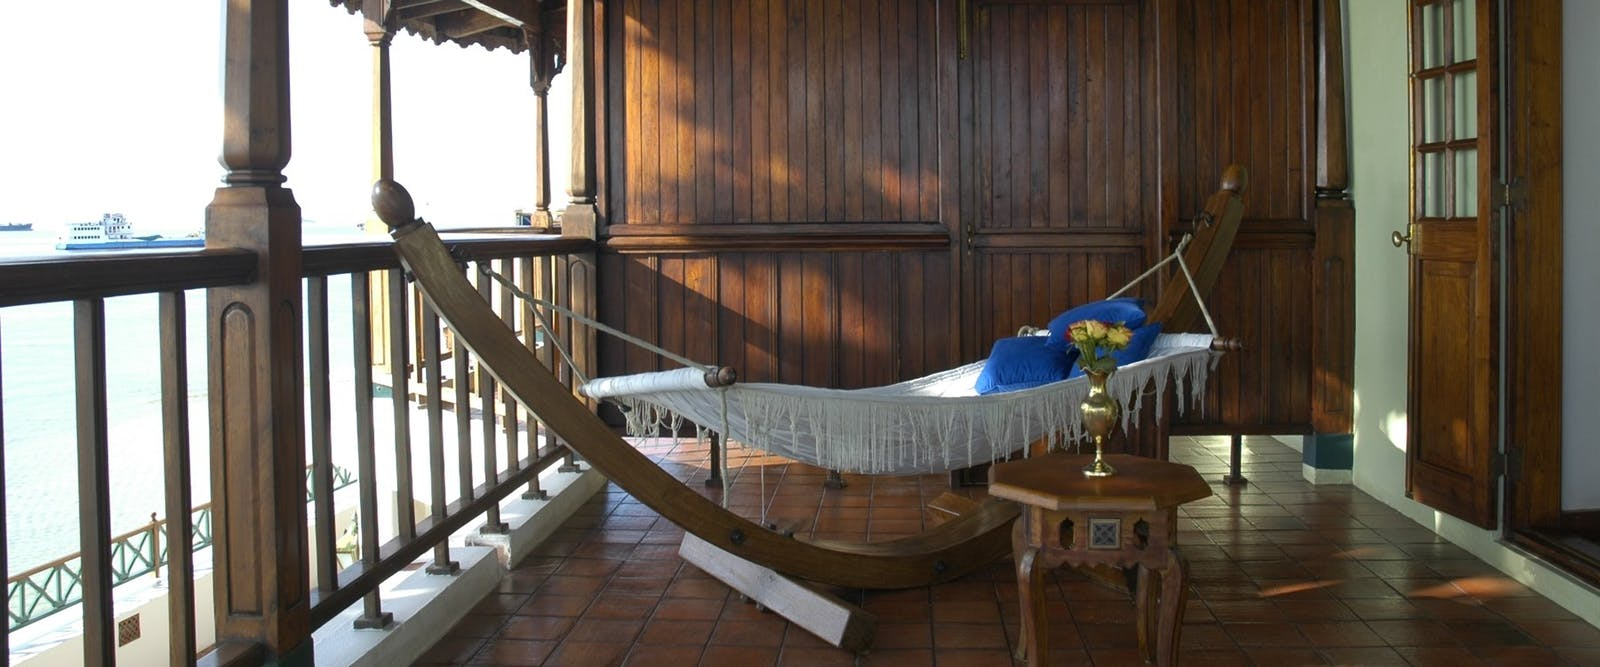 Balcony of honeymoon suite at Zanzibar Serena Hotel